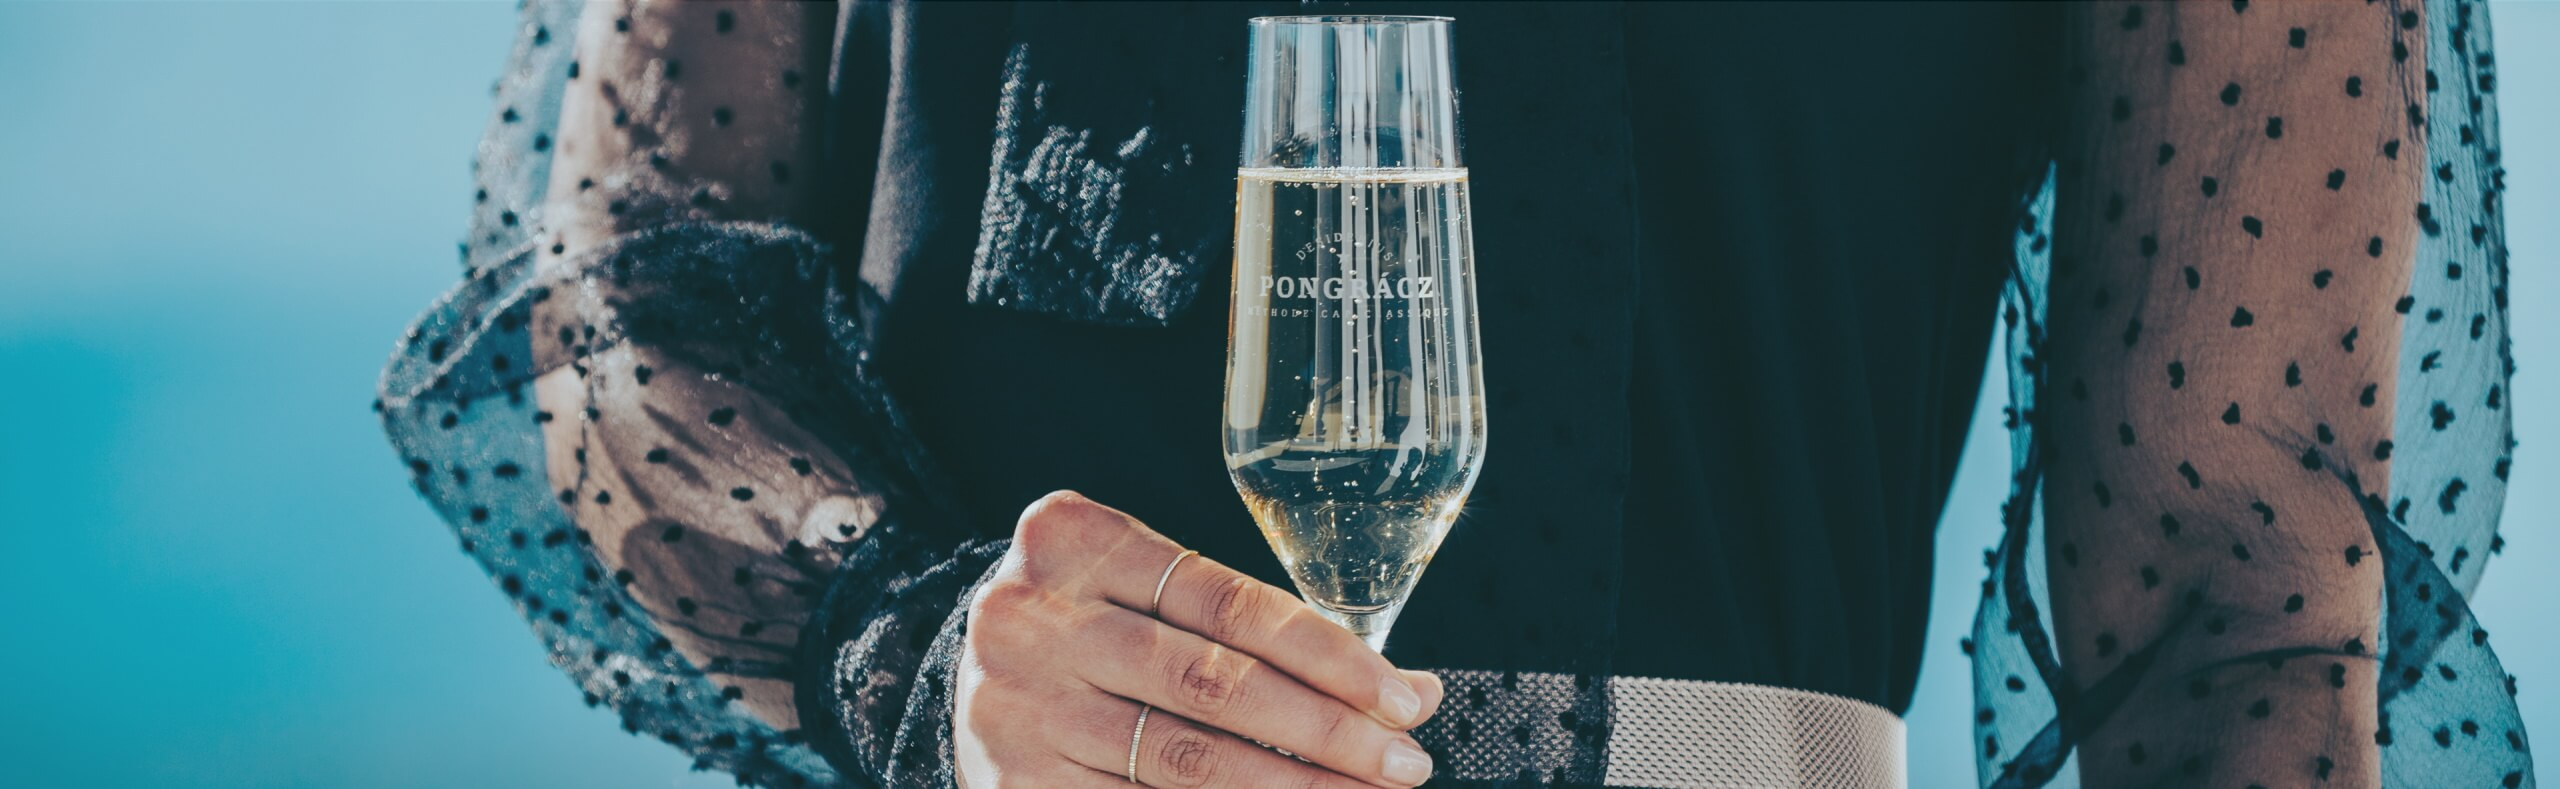 Lady holding a flute glass filled with Pongracz MCC